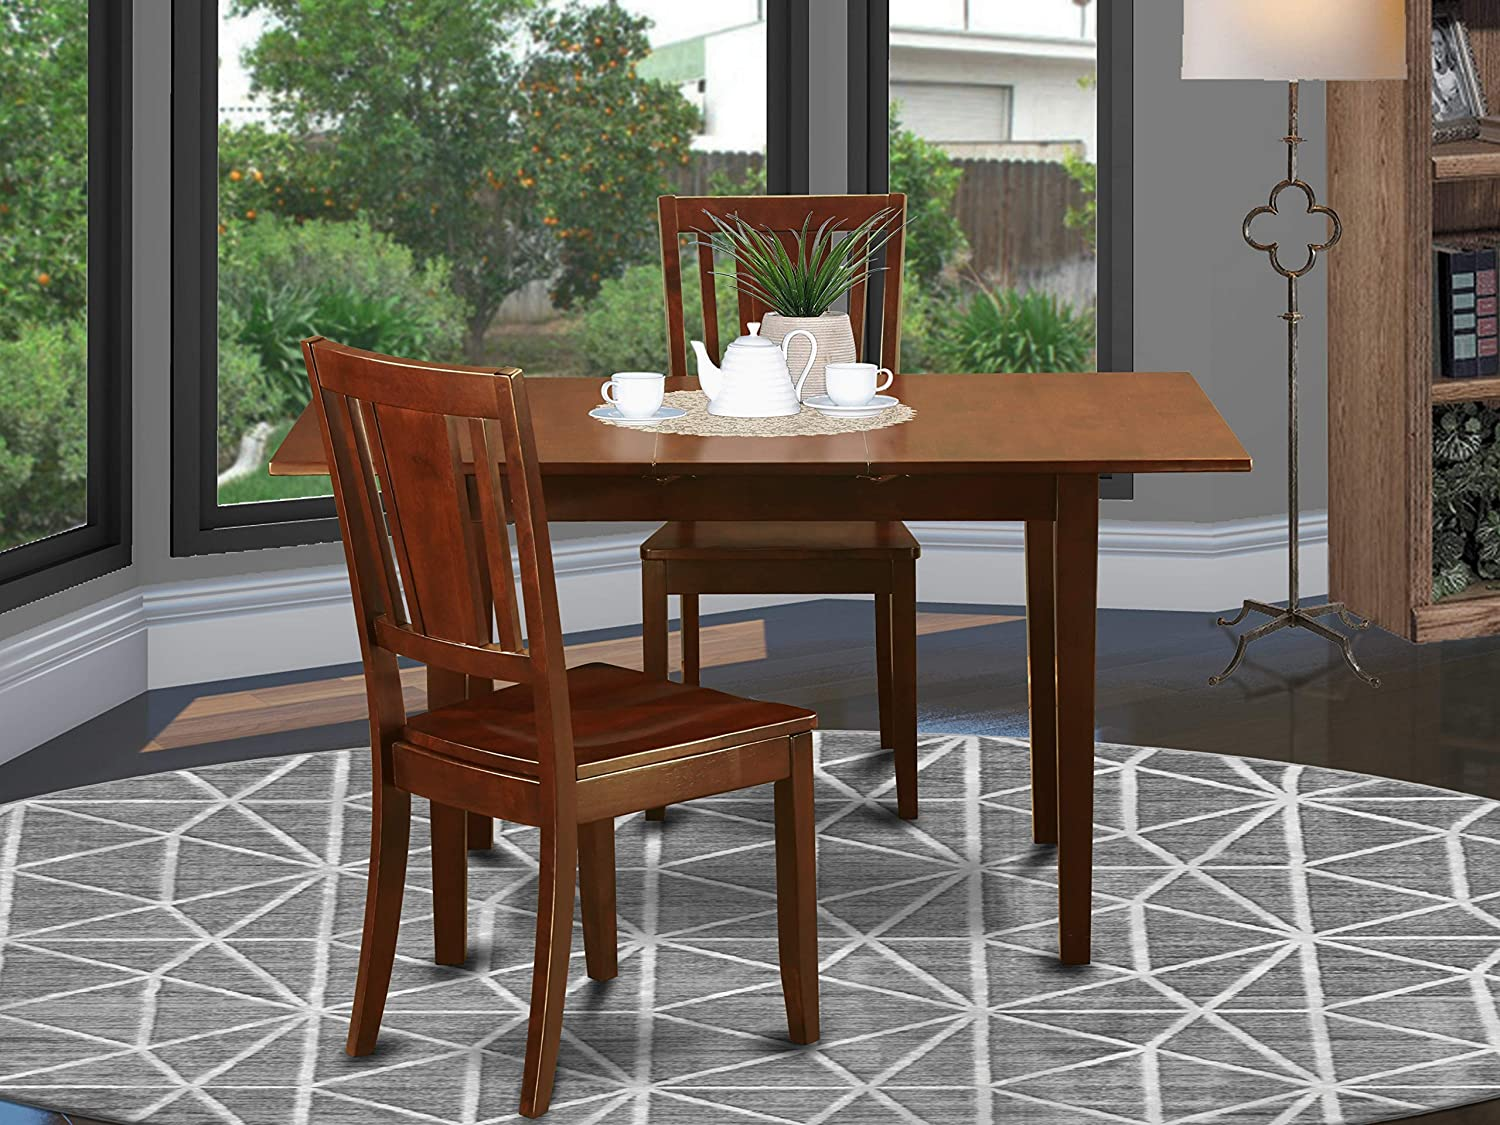 Amazon.com - 3 Pc Small dinette set - Dining Tables for small